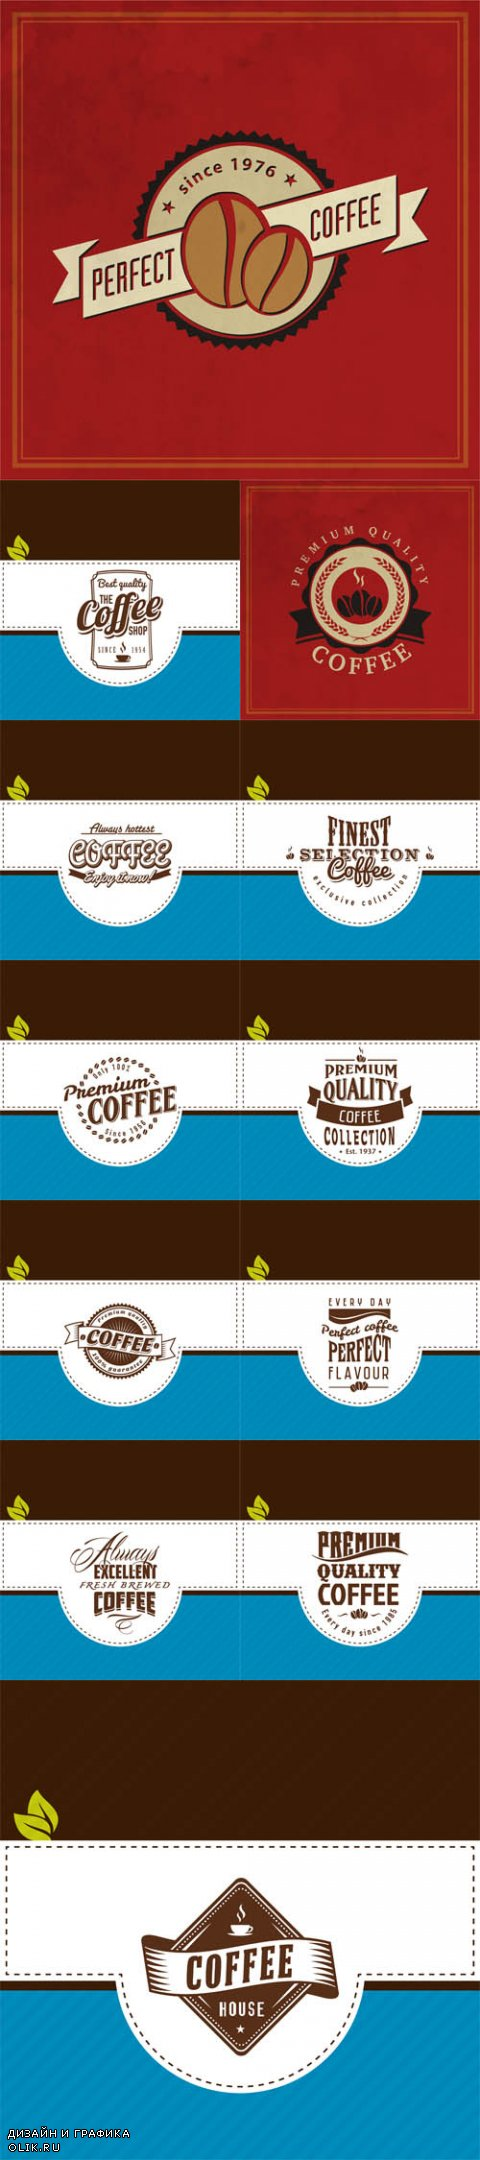 Vector Coffee Shop Logo Design Element in Vintage Style